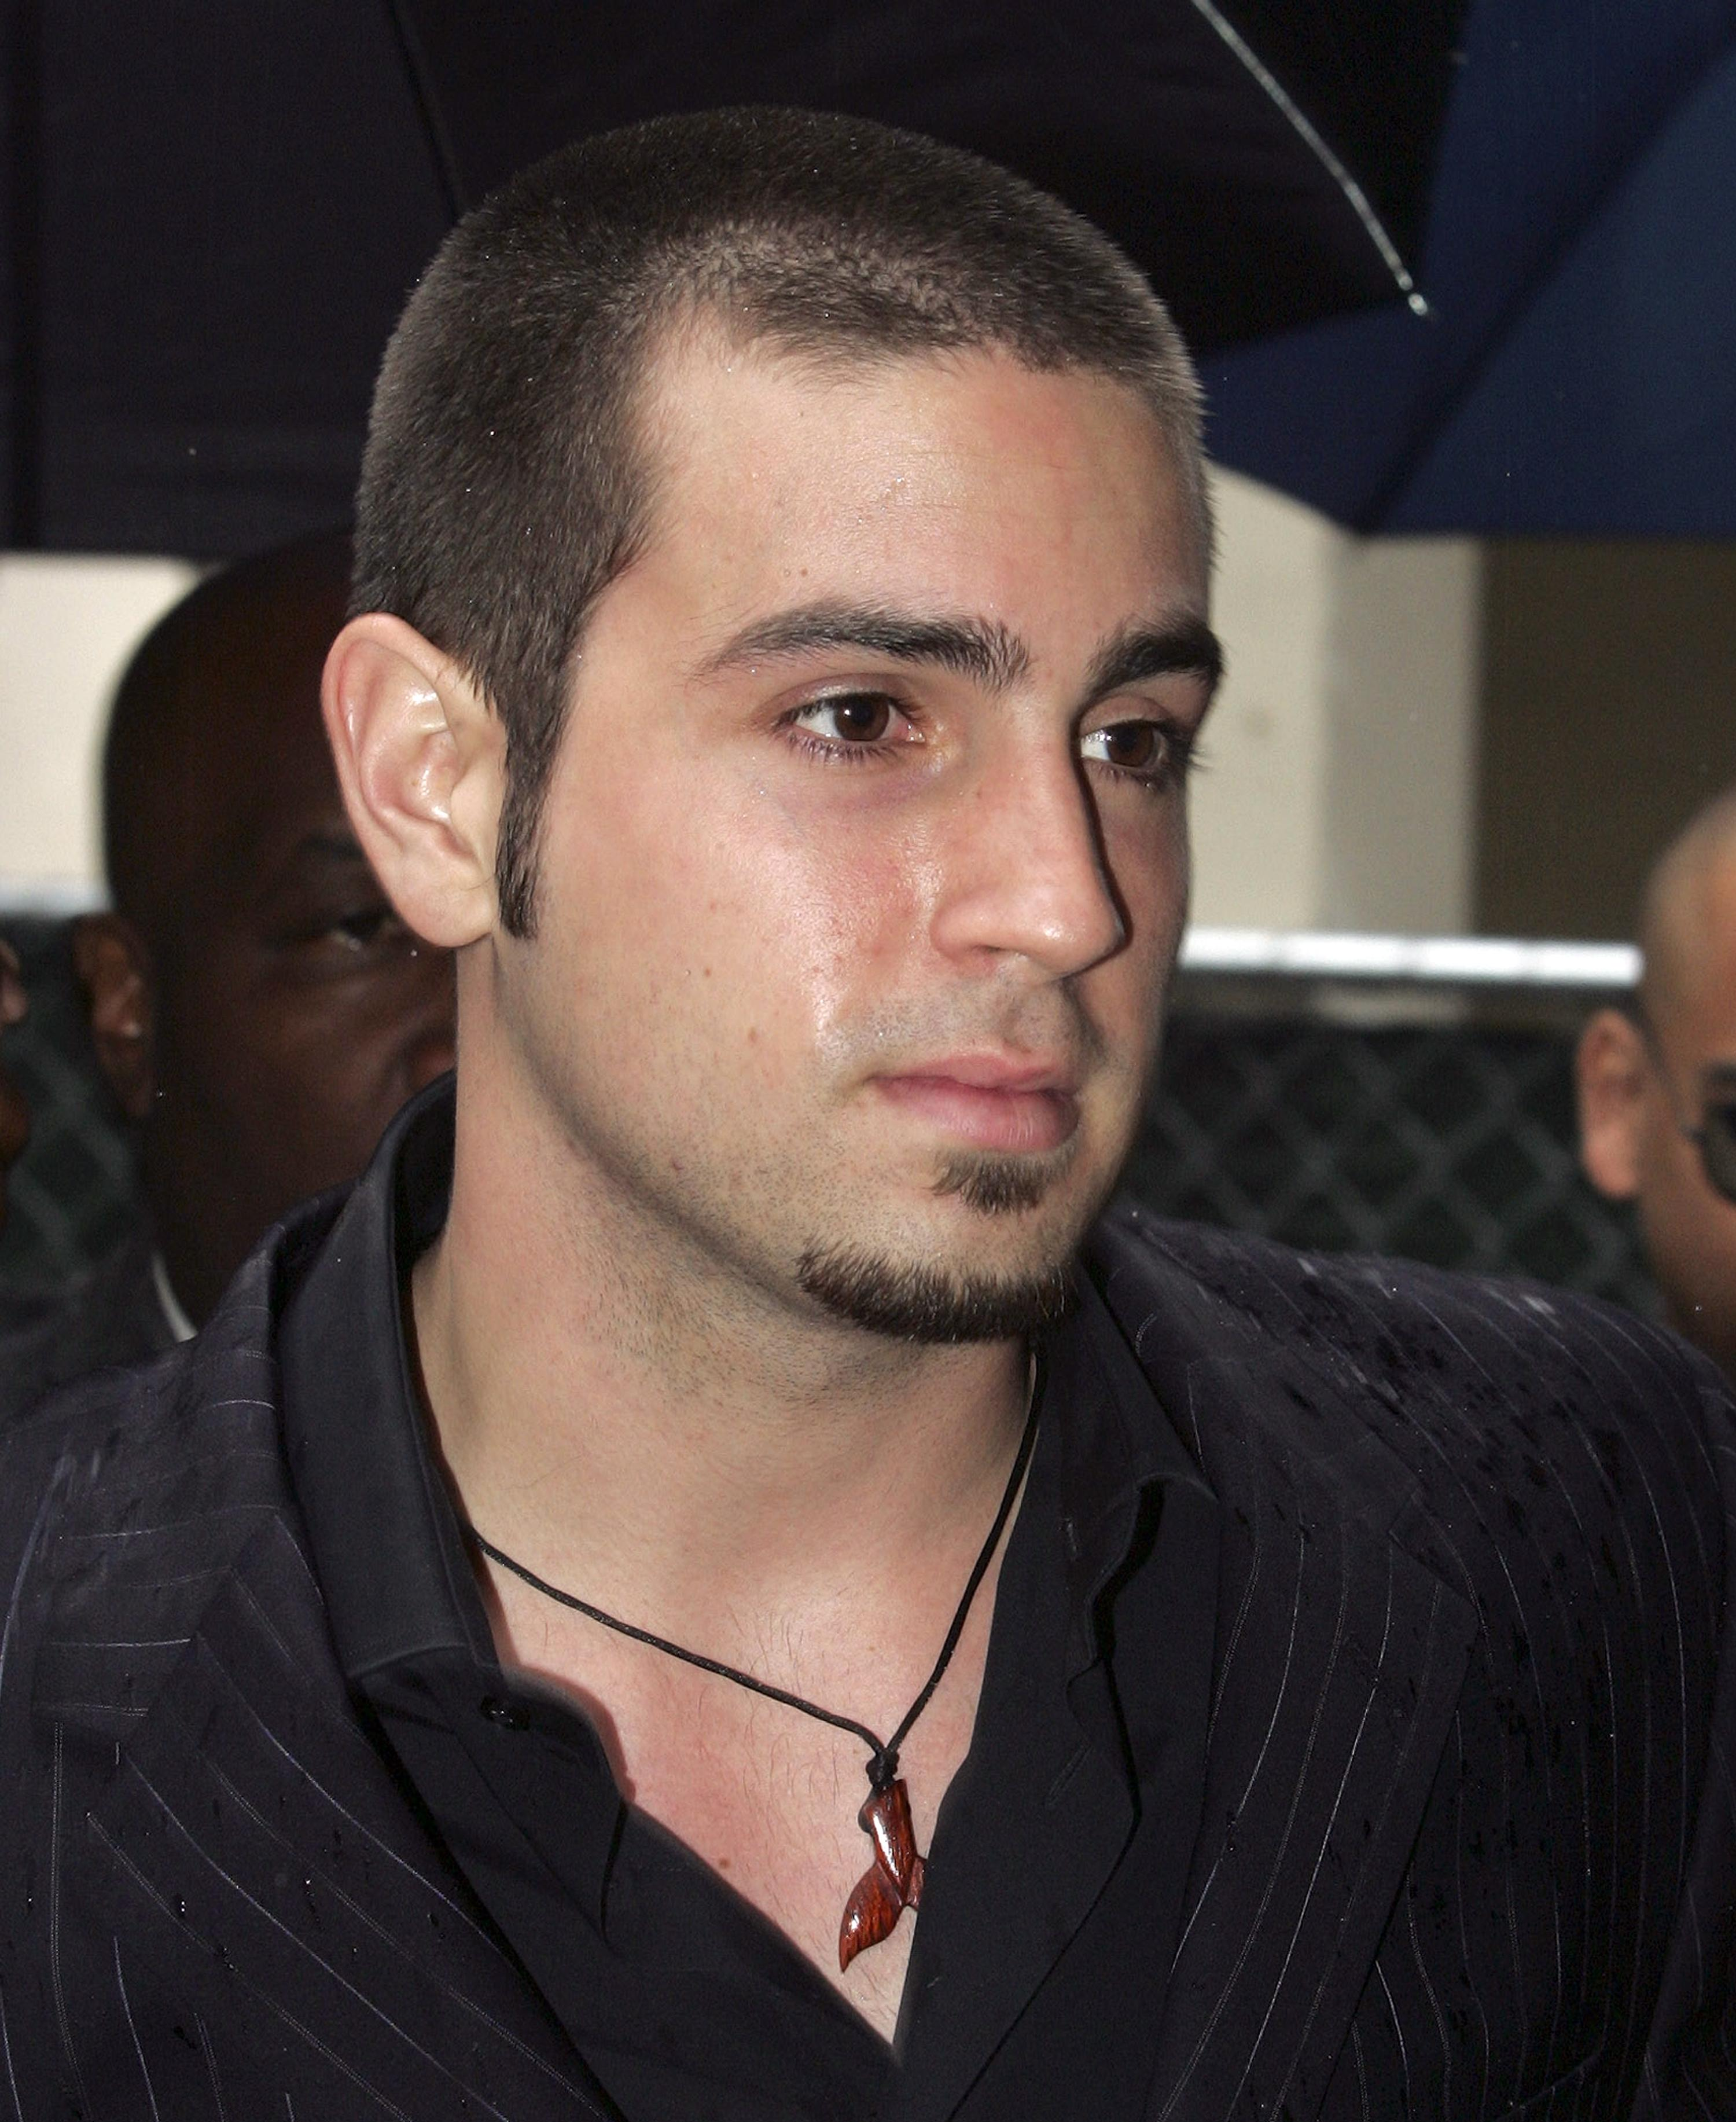 FILE - In this May 5, 2005 file photo, professional dancer Wade Robson arrives at the Michael Jackson child molestation trial in Santa Maria, Calif. A judge has dismissed the lawsuit brought by Robson, who alleged Michael Jackson molested him as a child. The summary judgment ruling Tuesday, Dec. 19, 2017, against Robson resolves one of the last remaining major claims against the late singer's holdings. (AP Photo/Carlo Allegri, Pool, File)